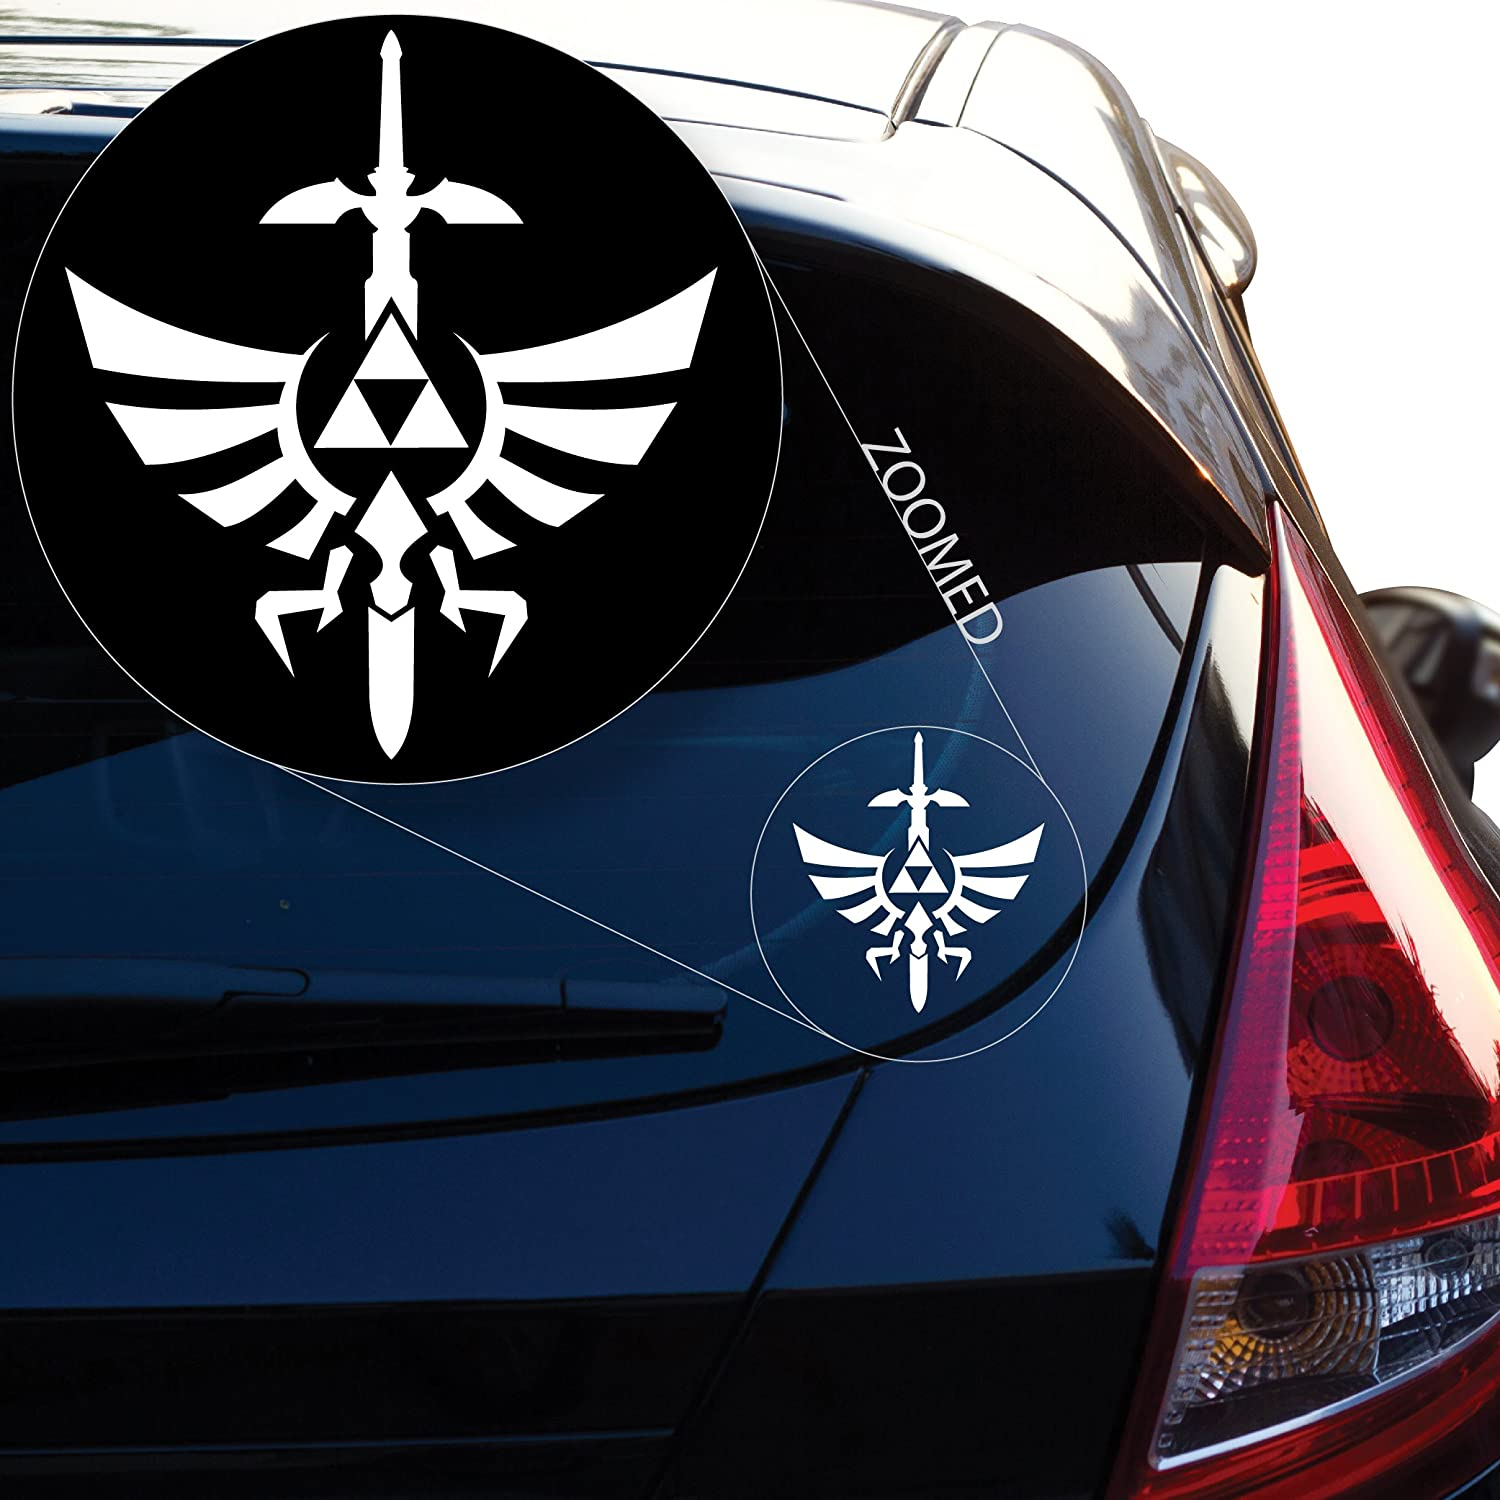 Yoonek Graphics Zelda Triforce with Sword Decal Sticker for Car Window, Laptop, Motorcycle, Walls, Mirror and More. # 554 (4